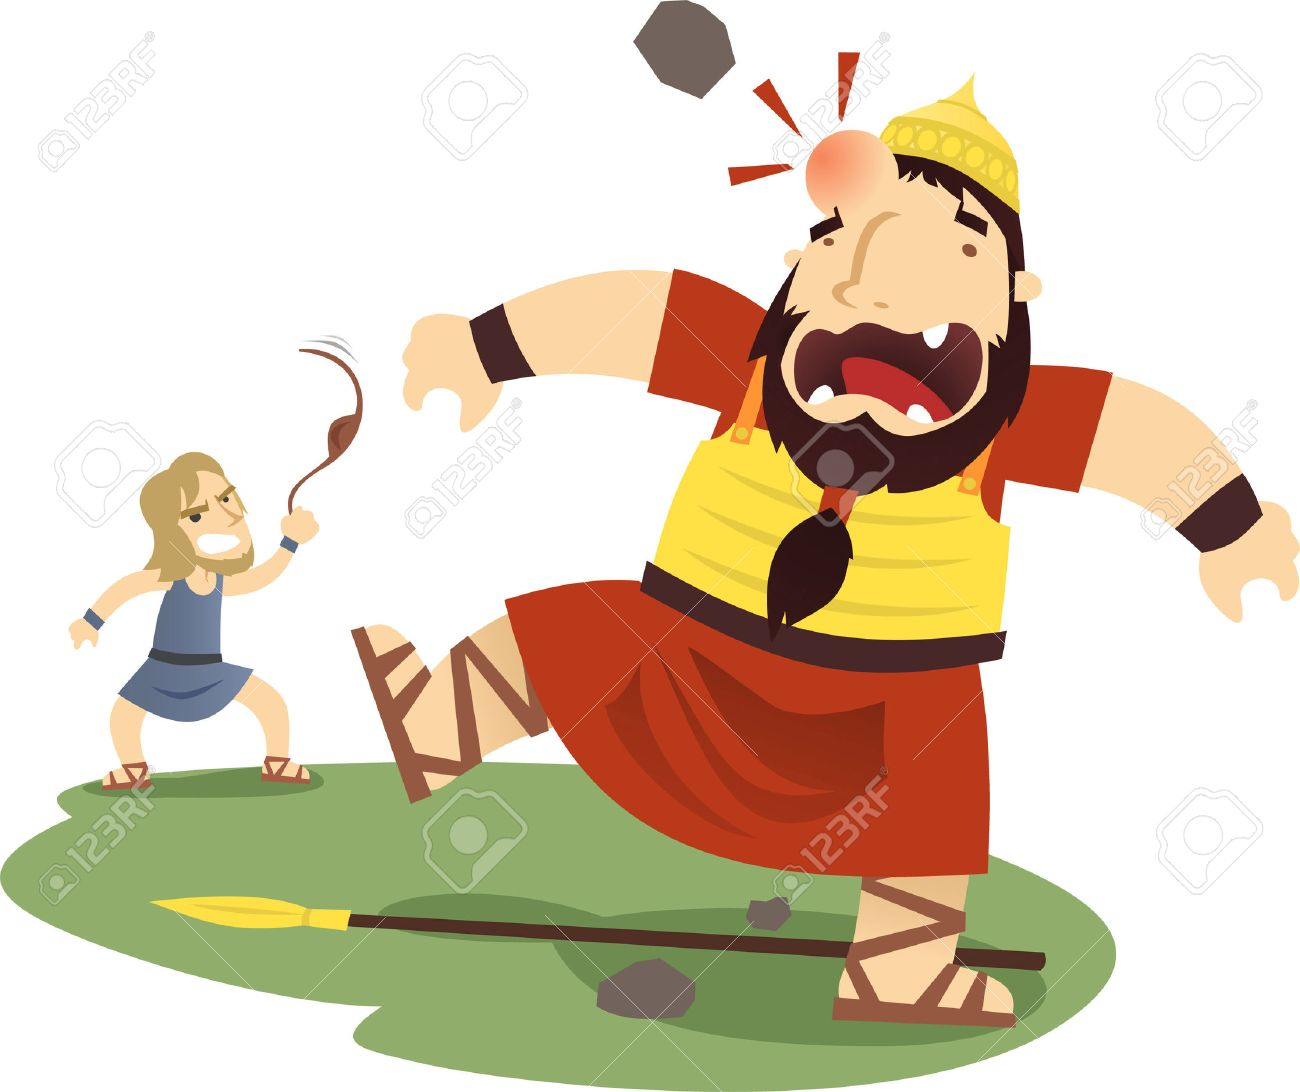 David and Goliath cartoon illustration.